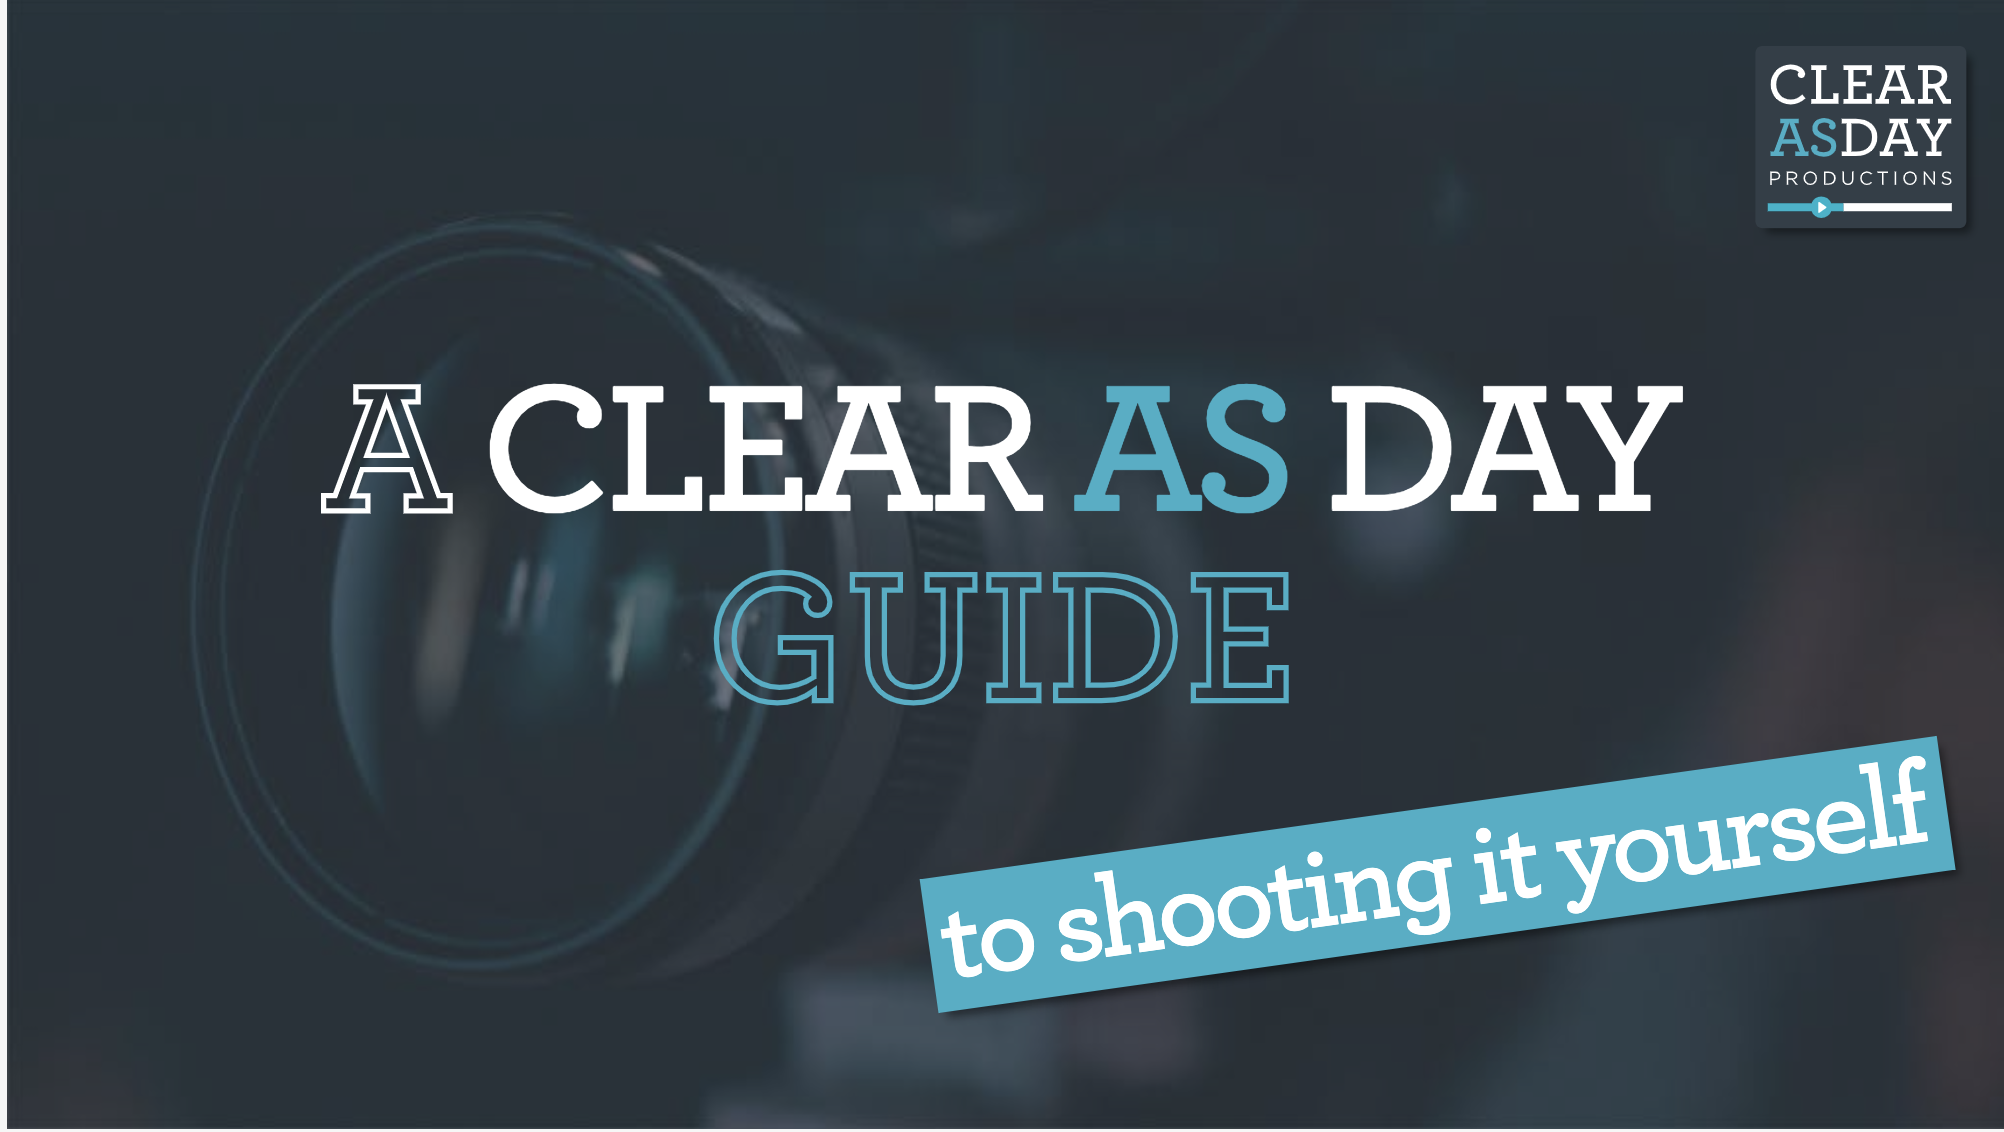 a clear as day guide